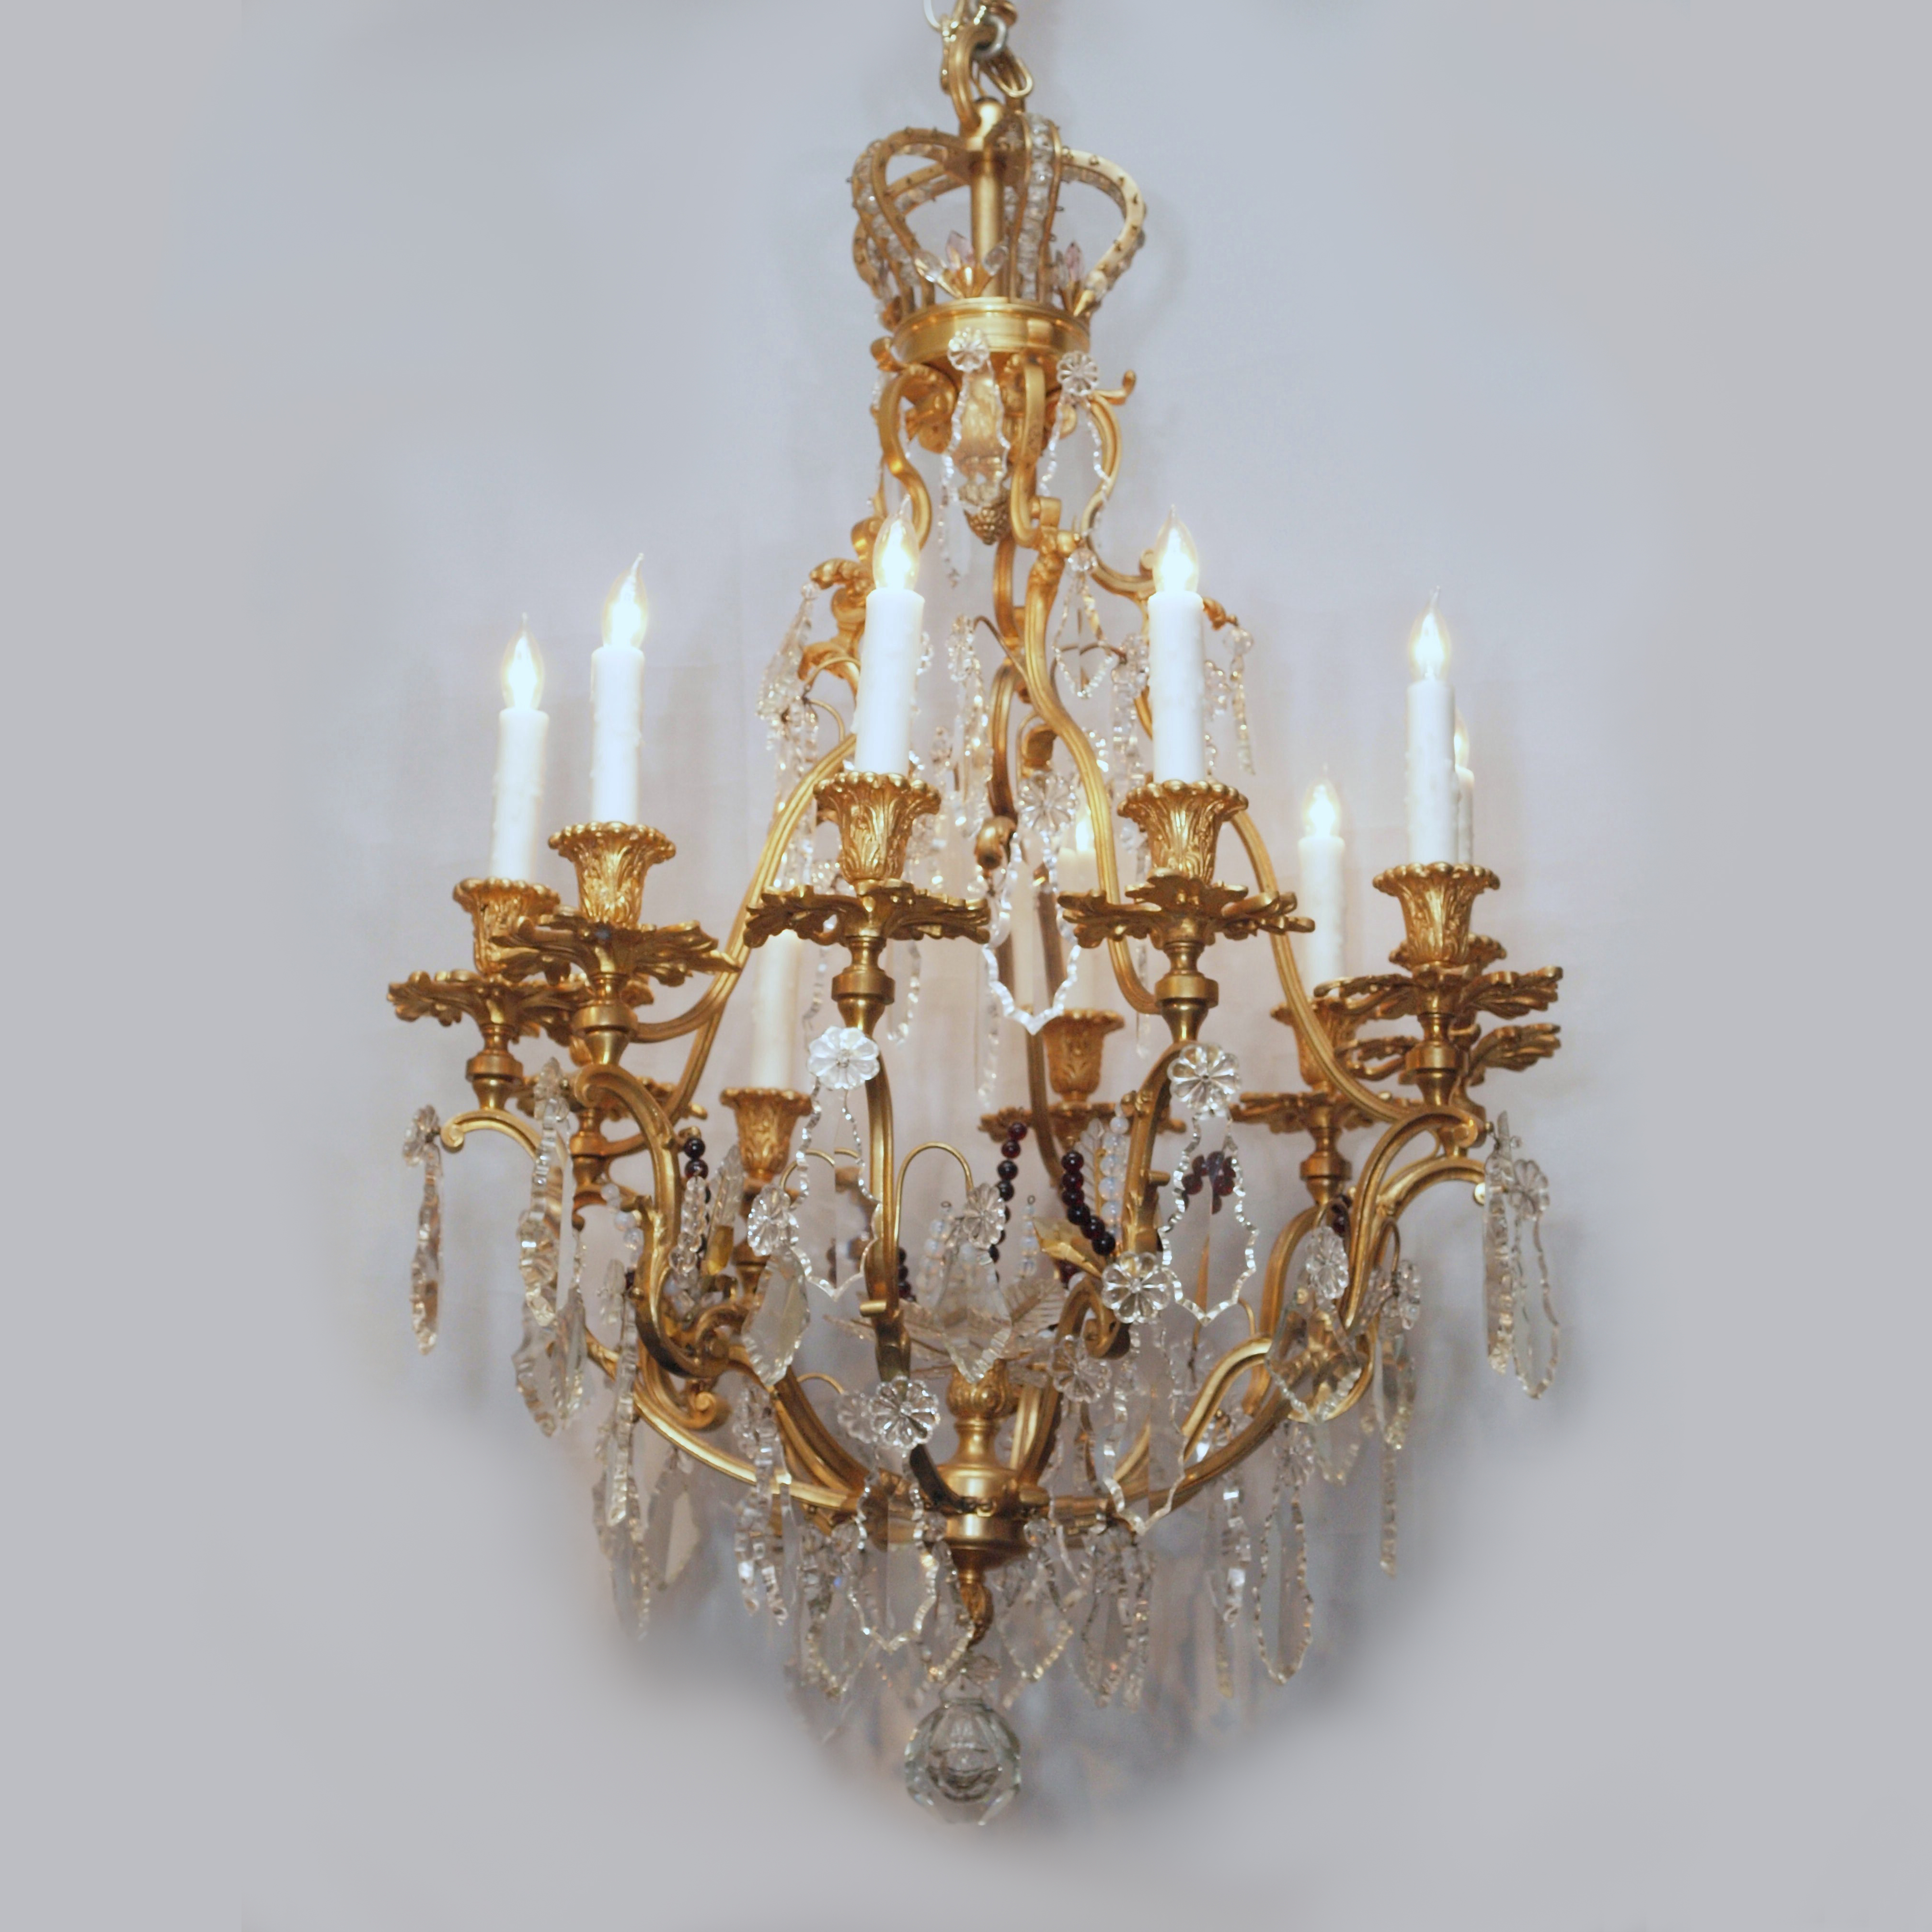 Antique french gold bronze and crystal chandelier with crown circa antique french gold bronze and crystal chandelier with crown circa 1870 1890 arubaitofo Gallery